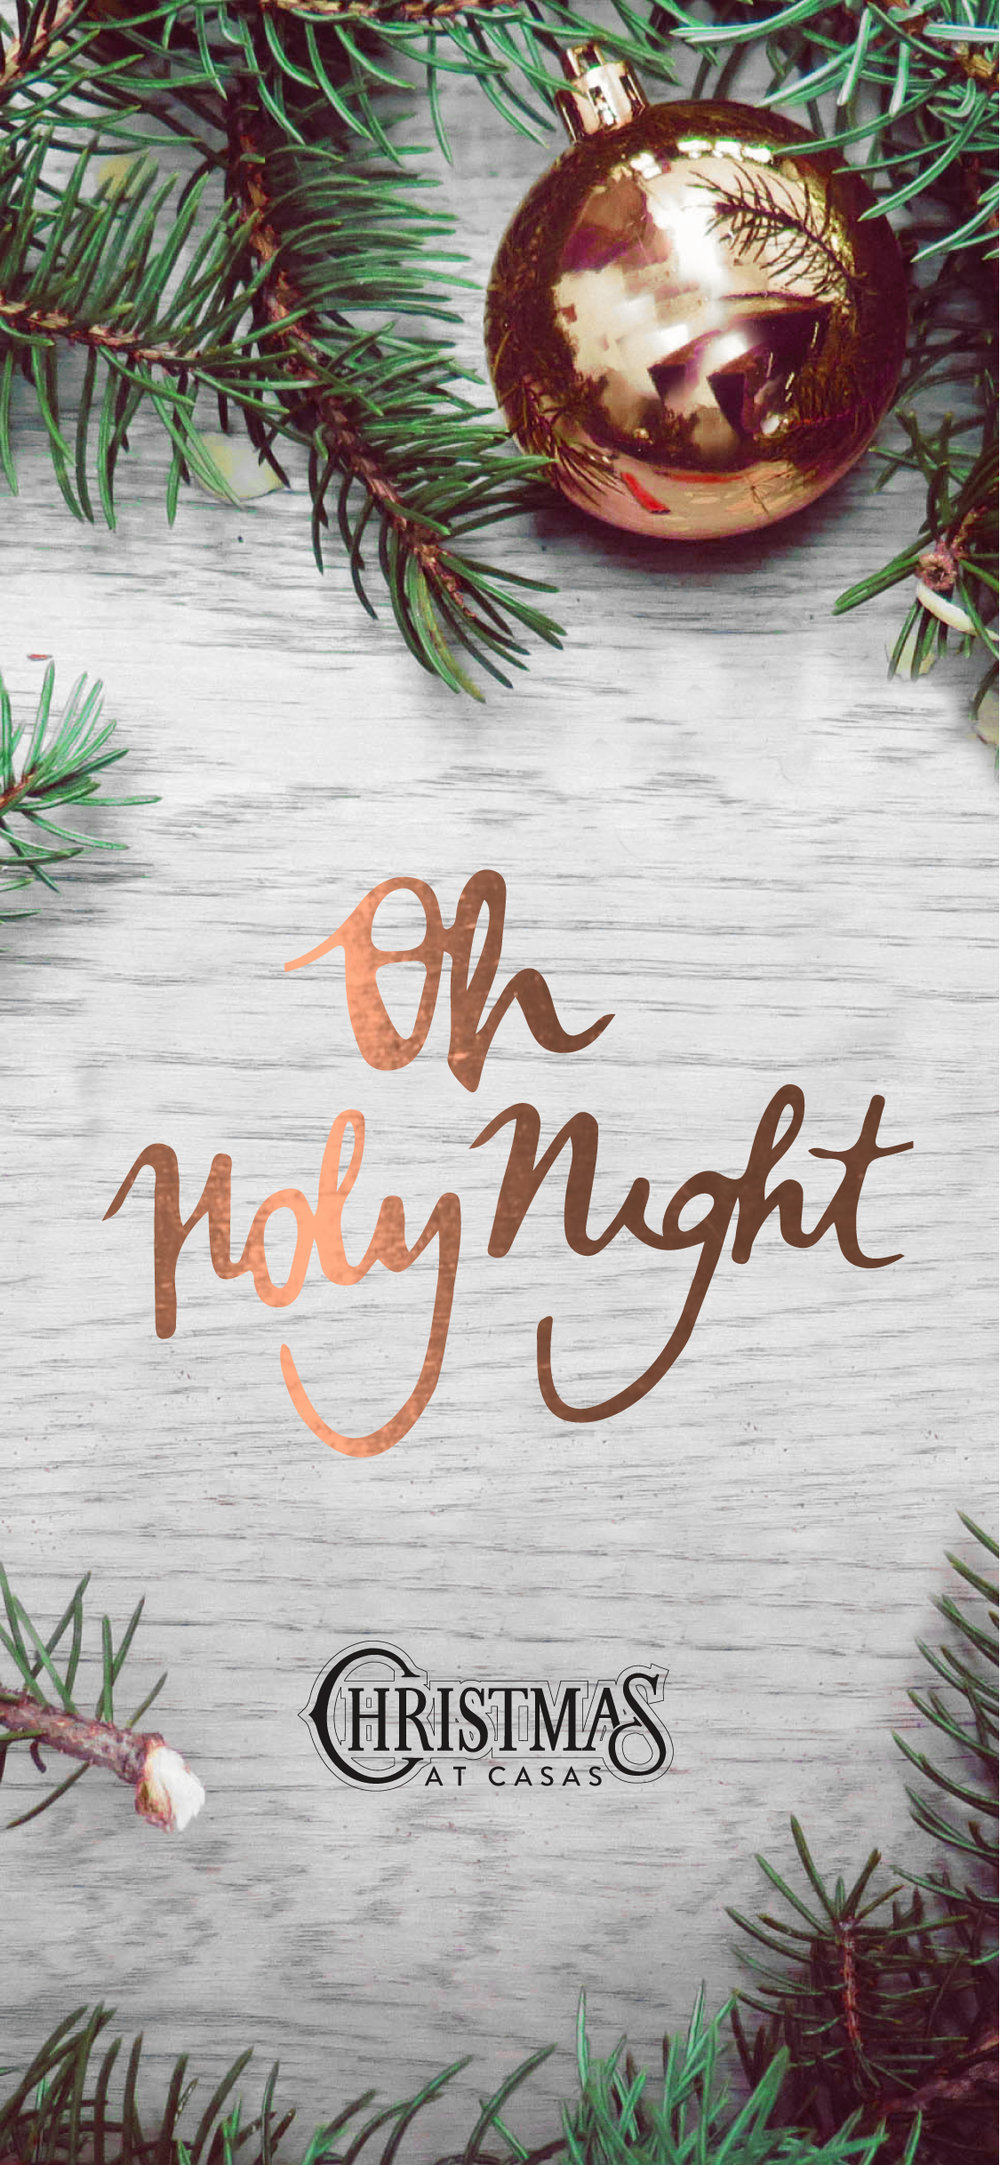 OhHolyNight_iphone7_8.jpg